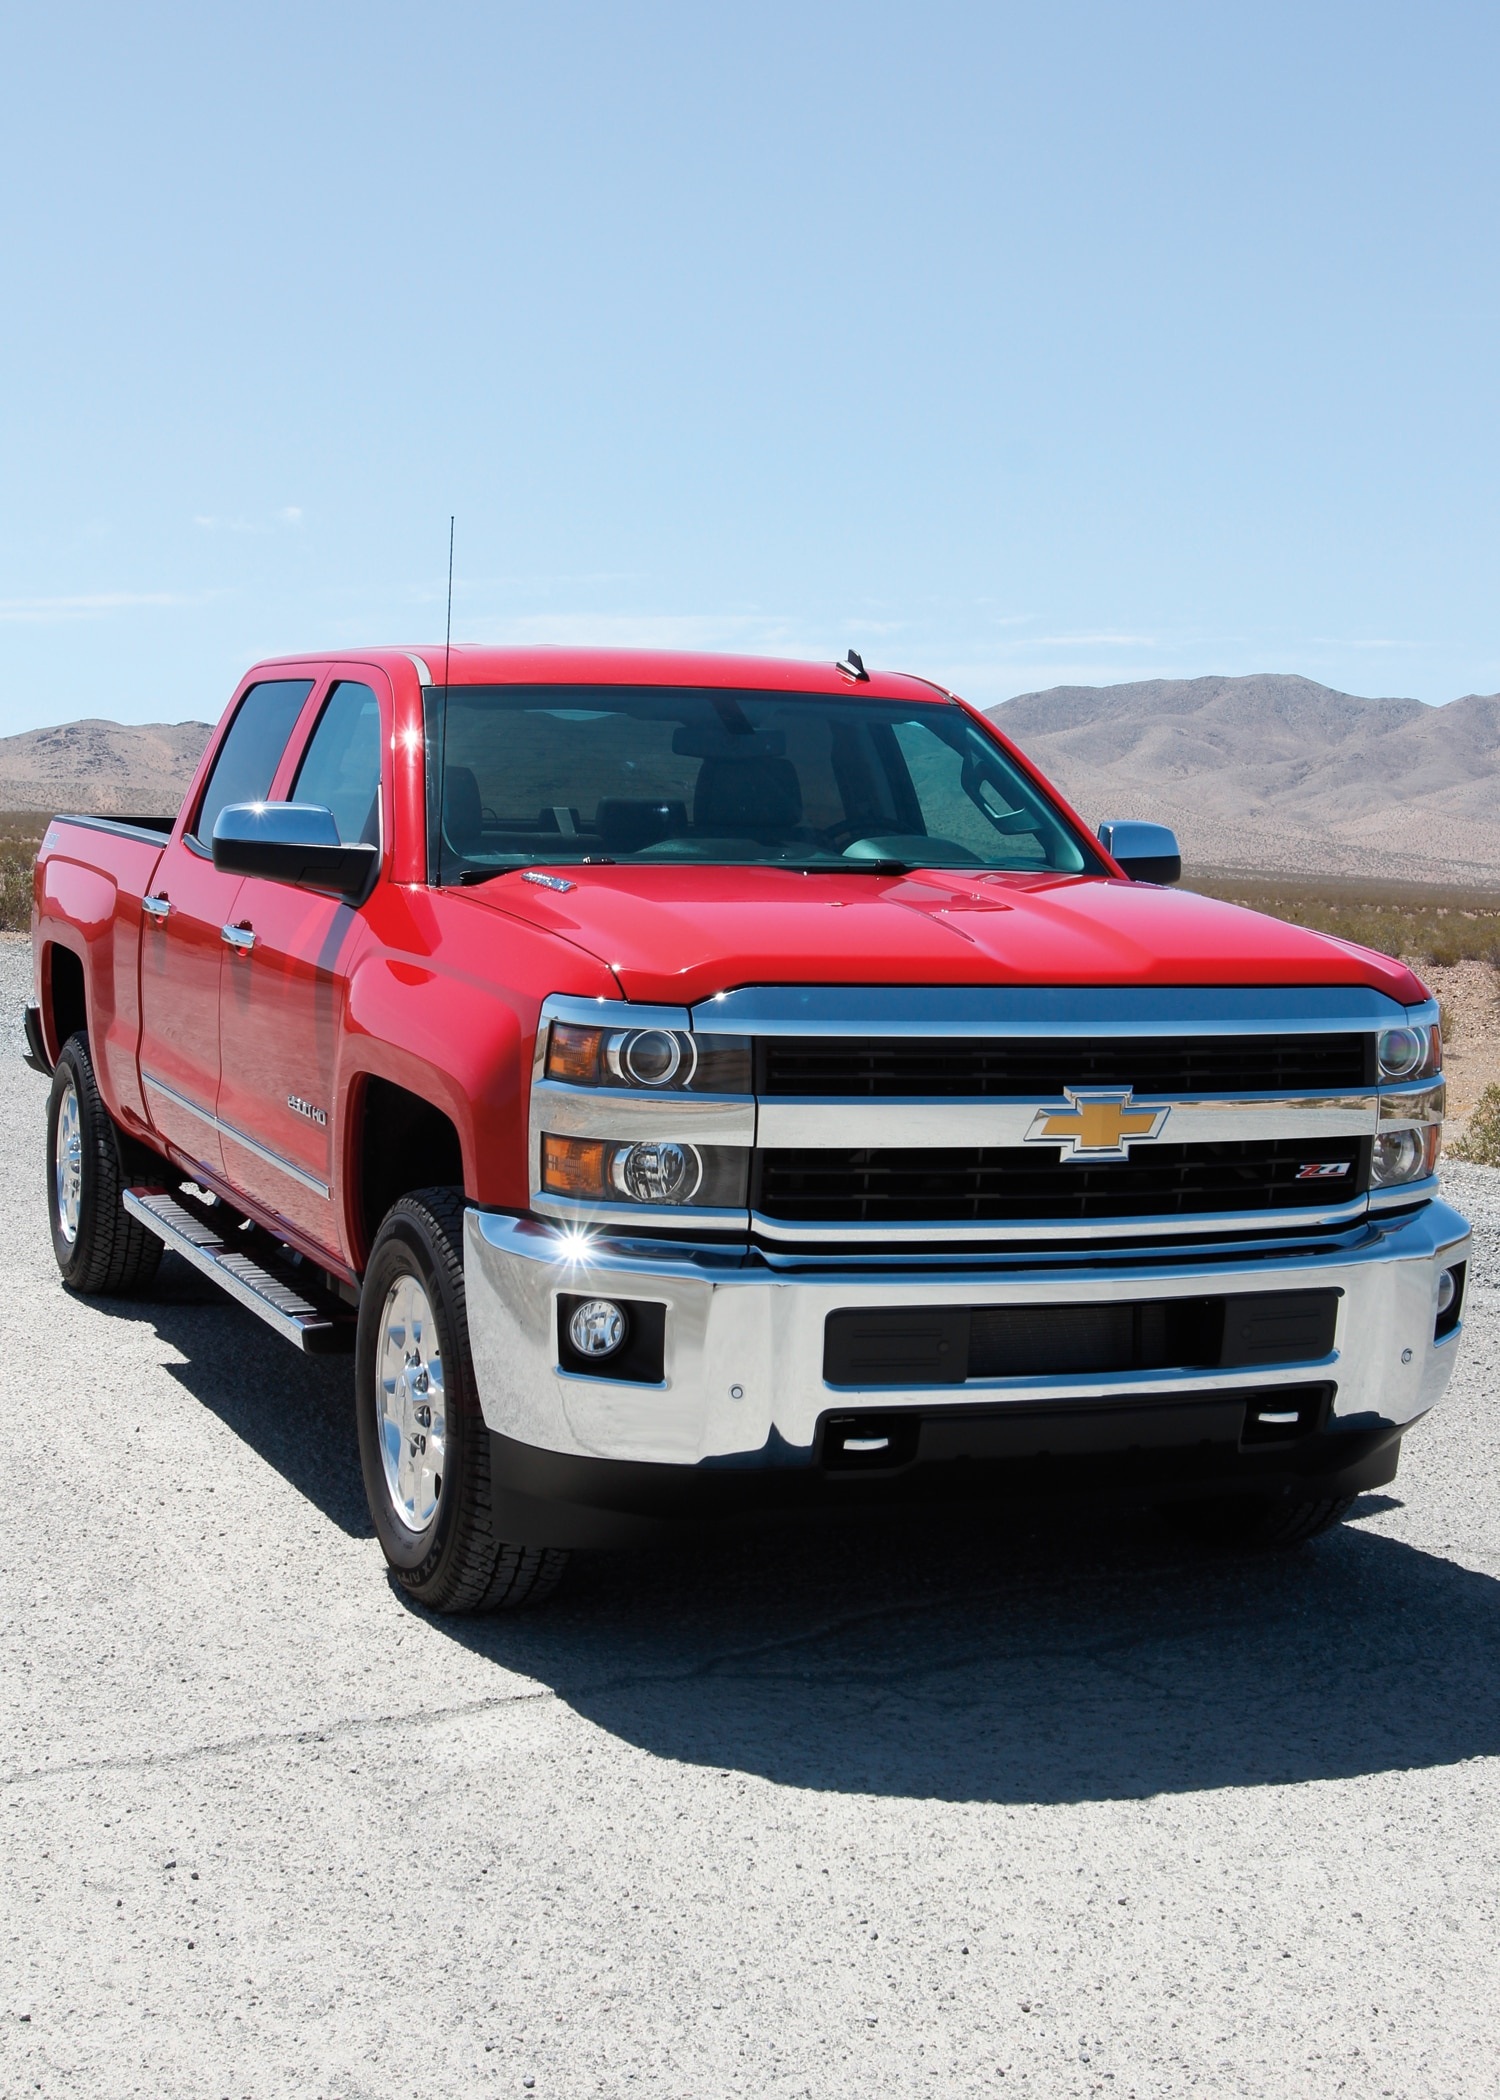 2015 chevrolet silverado 2500hd duramax and 2500hd vortec gas vs diesel. Black Bedroom Furniture Sets. Home Design Ideas